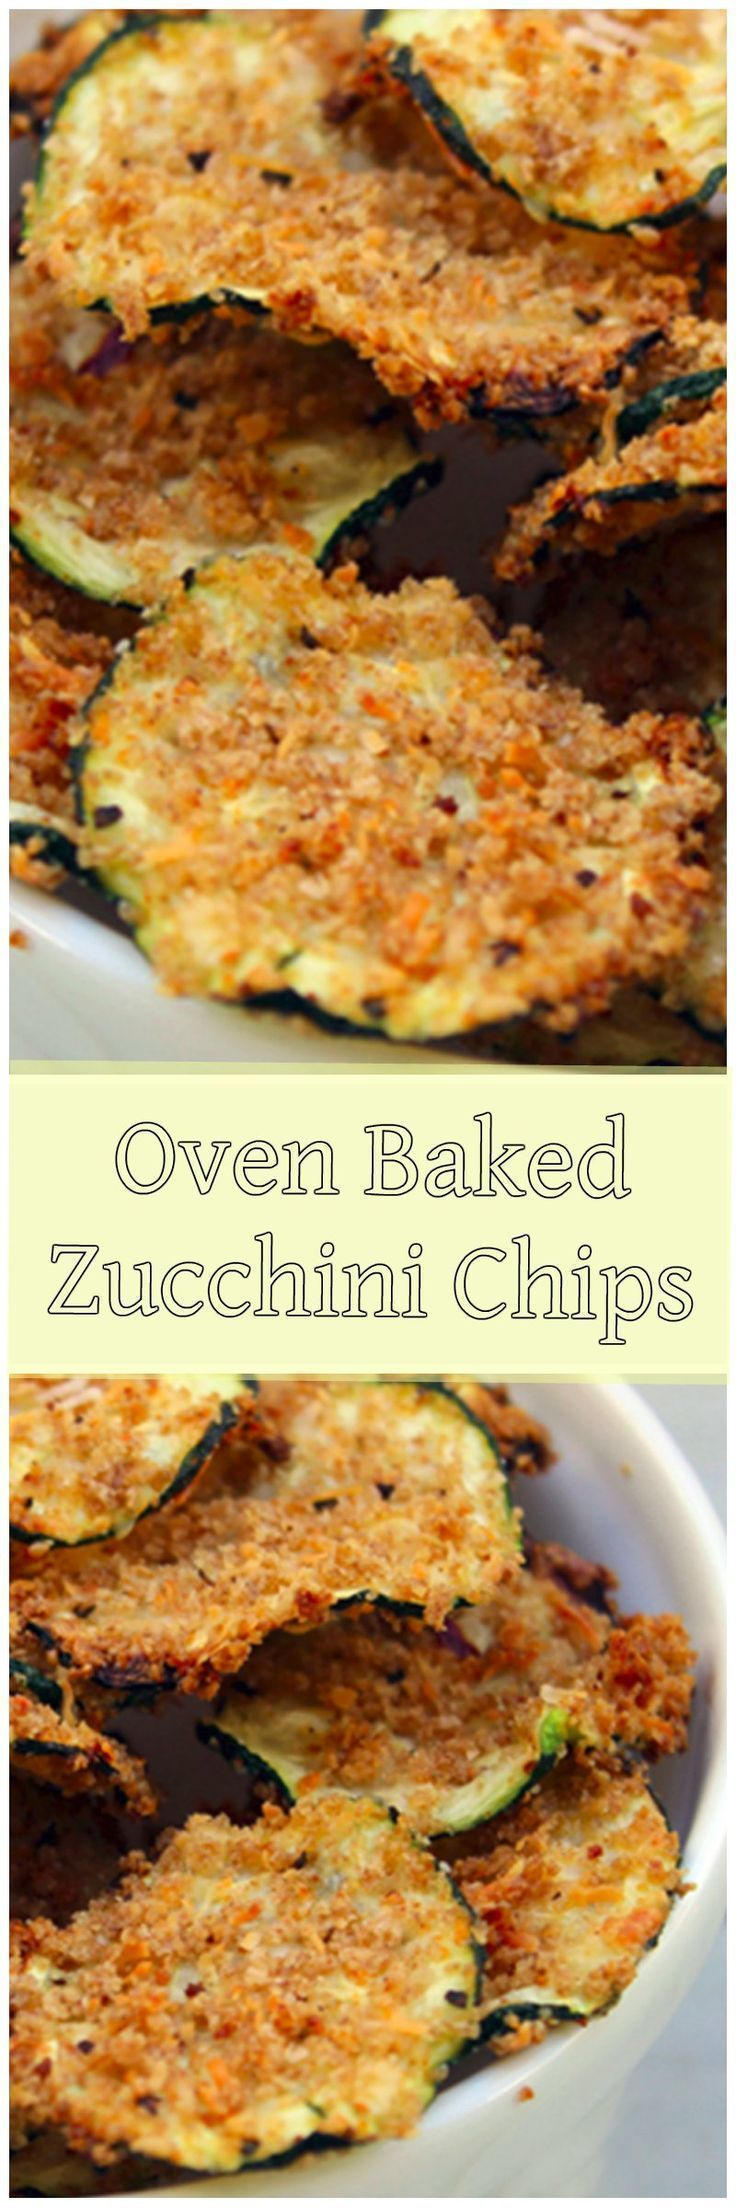 Oven Baked Zucchini Chips - great for low-calorie snacking!  #healthysnacks #lowcaloriesnacks #zucchinichips